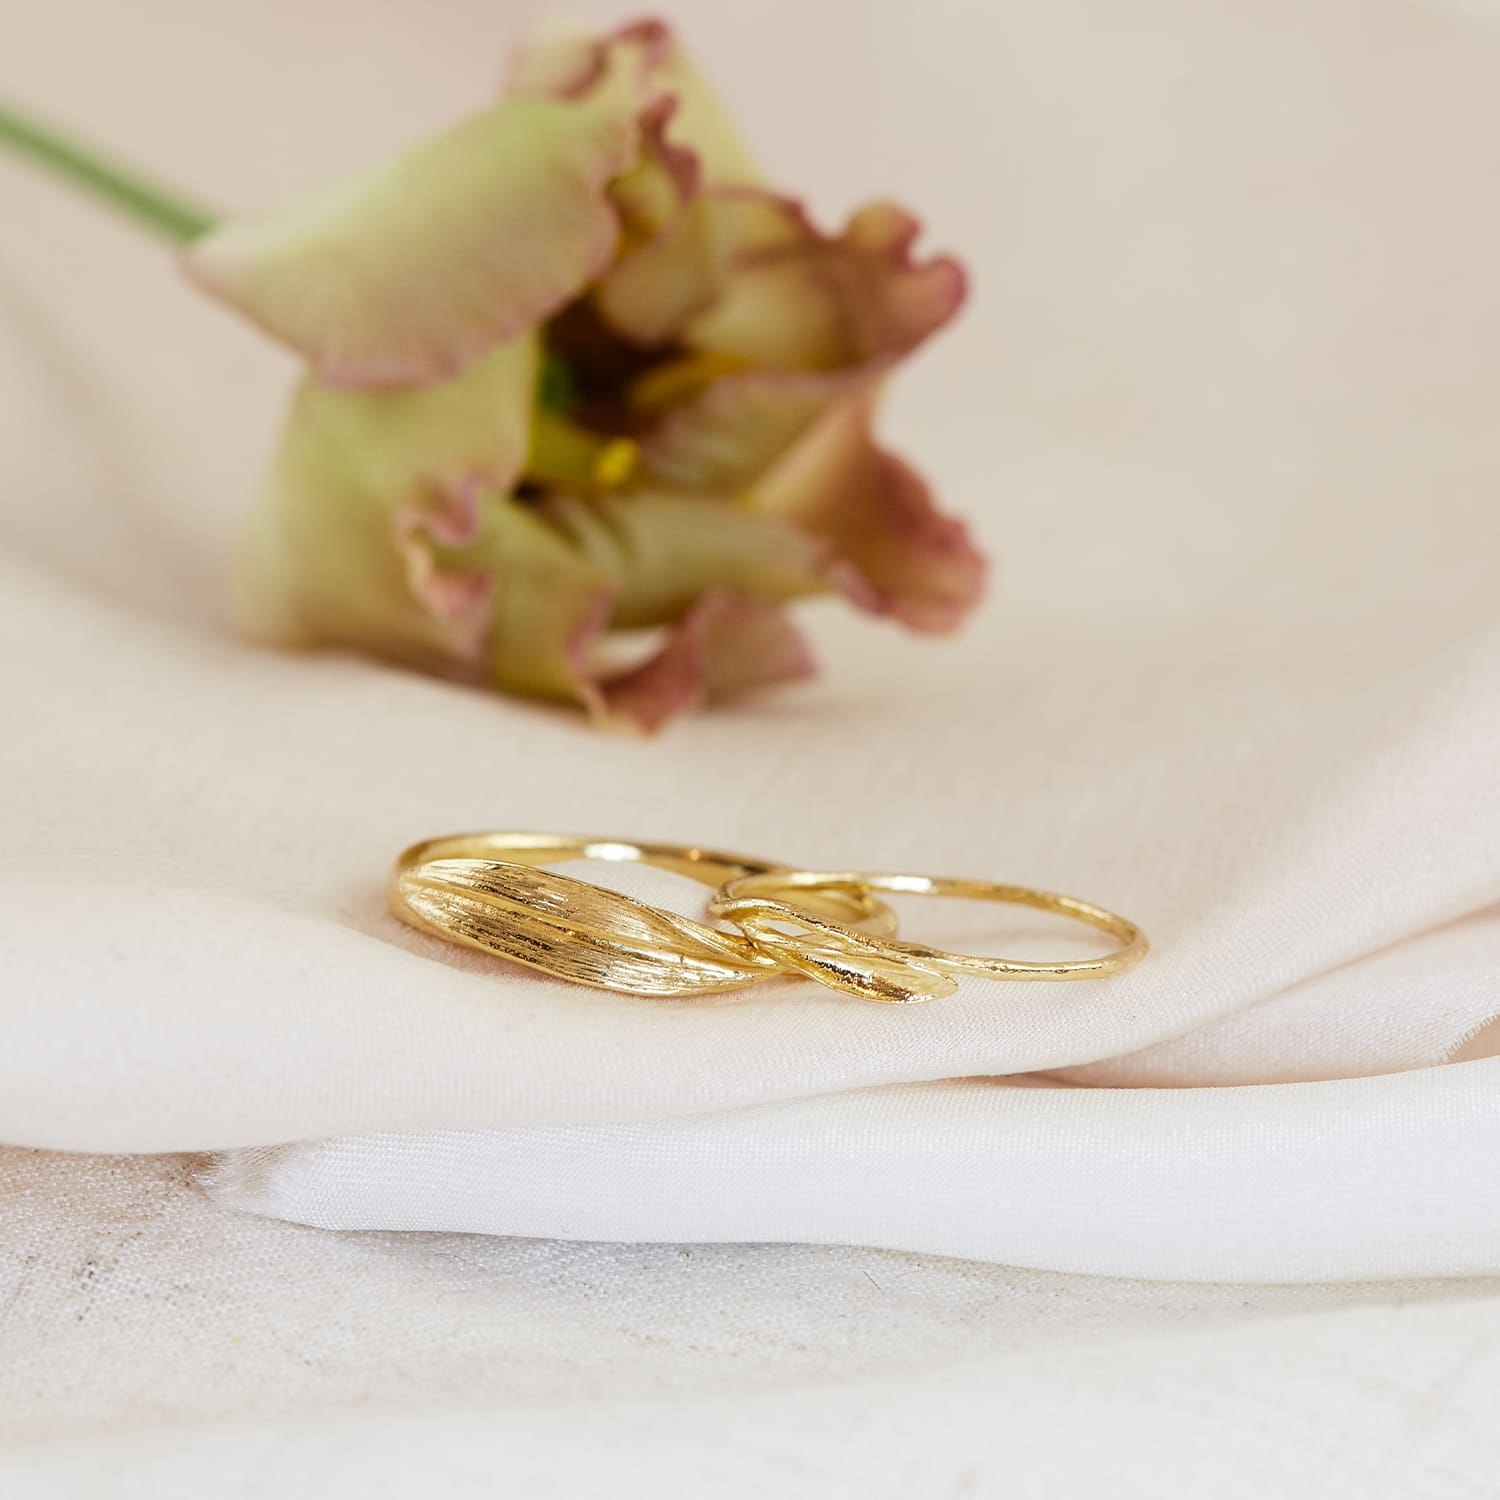 pair of 18ct yellow gold wedding bands rings with fine reed details on silk with flower petals